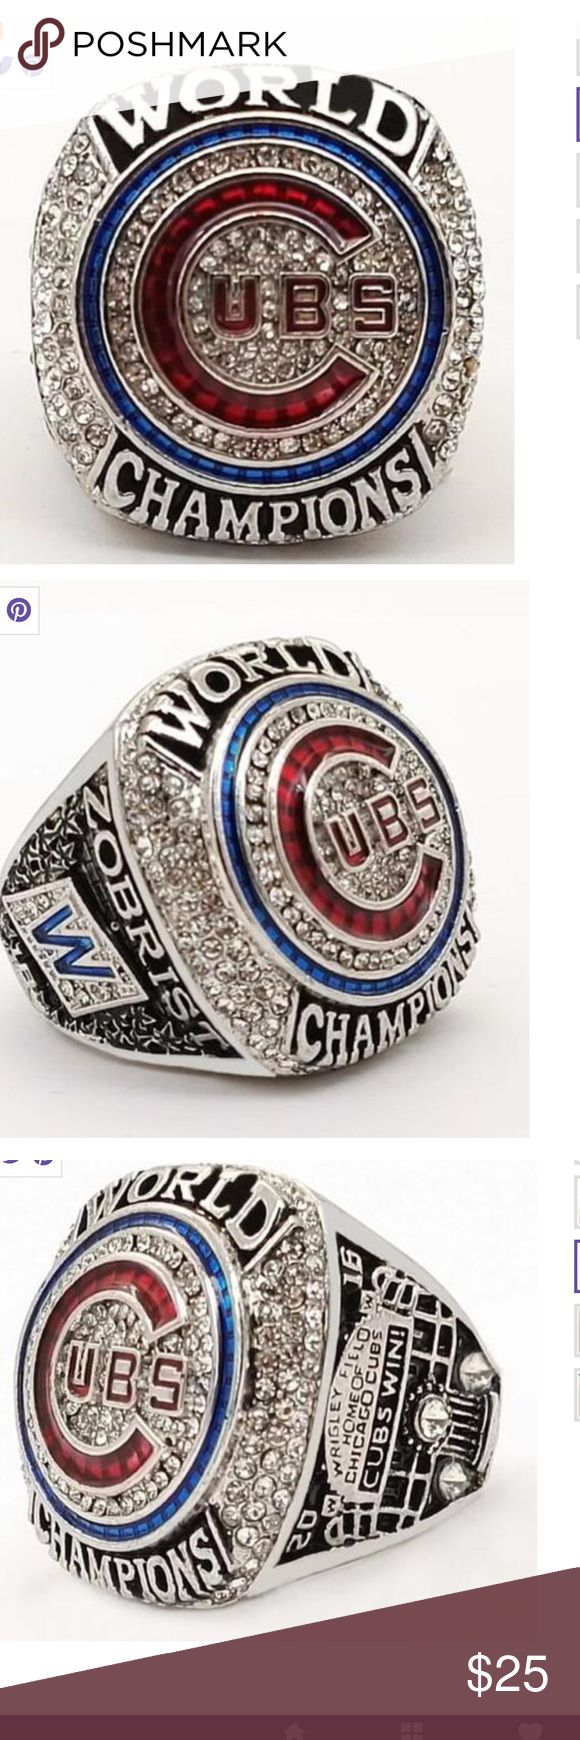 Jewelry 2016-2017 Chicago Cubs Championship replica ring. White gold plated. Hey you CUB fans you waited along time for this so own a piece of history. Great gift for the hardcore cubs fan!! Jewelry Rings